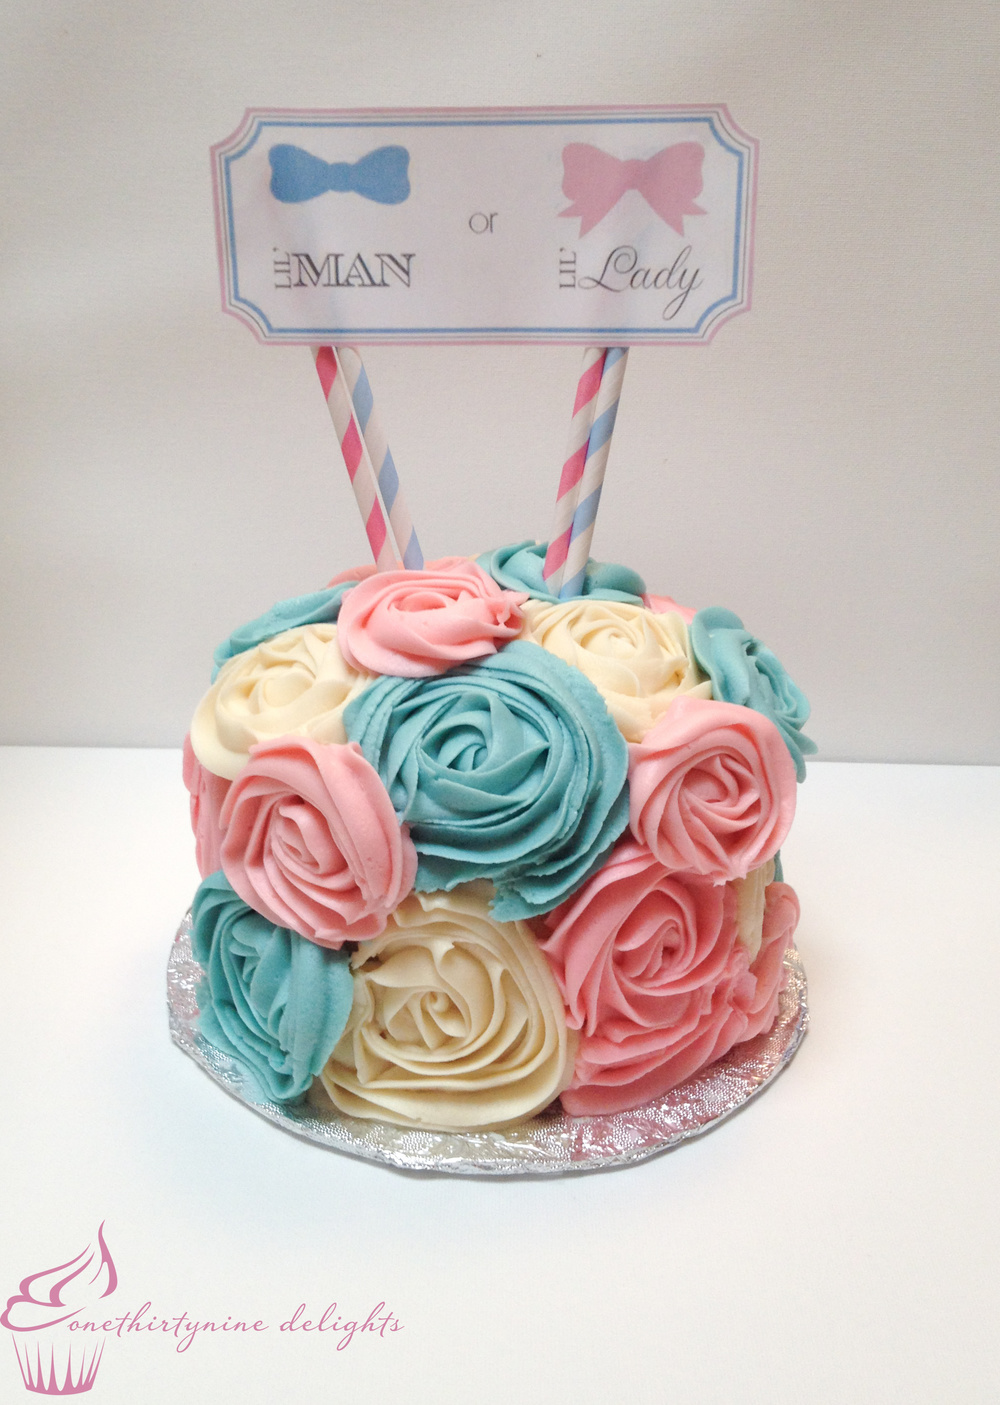 One Thirty Nine Delights Cake Gallery on birthday cupcake ideas